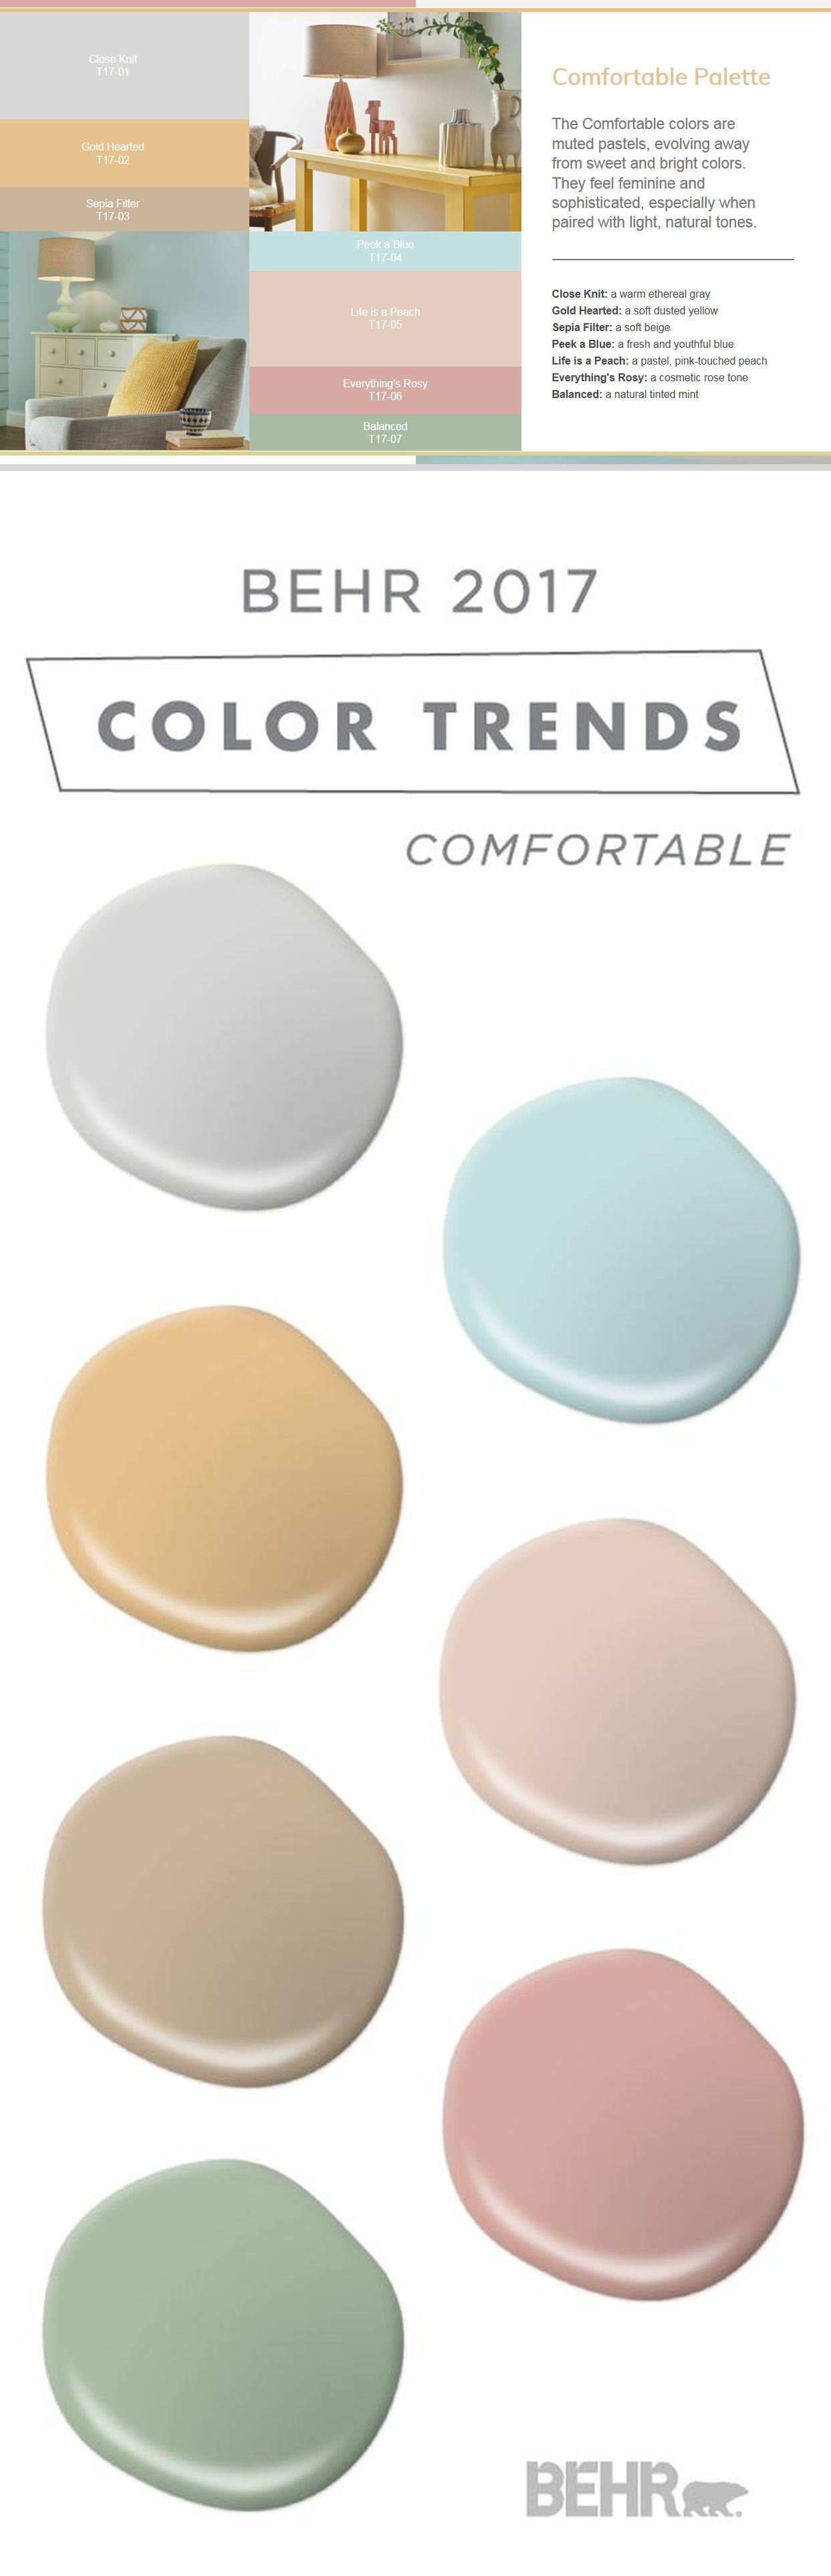 Behr 2017 Color Trends fortable Muted pastels evolving away